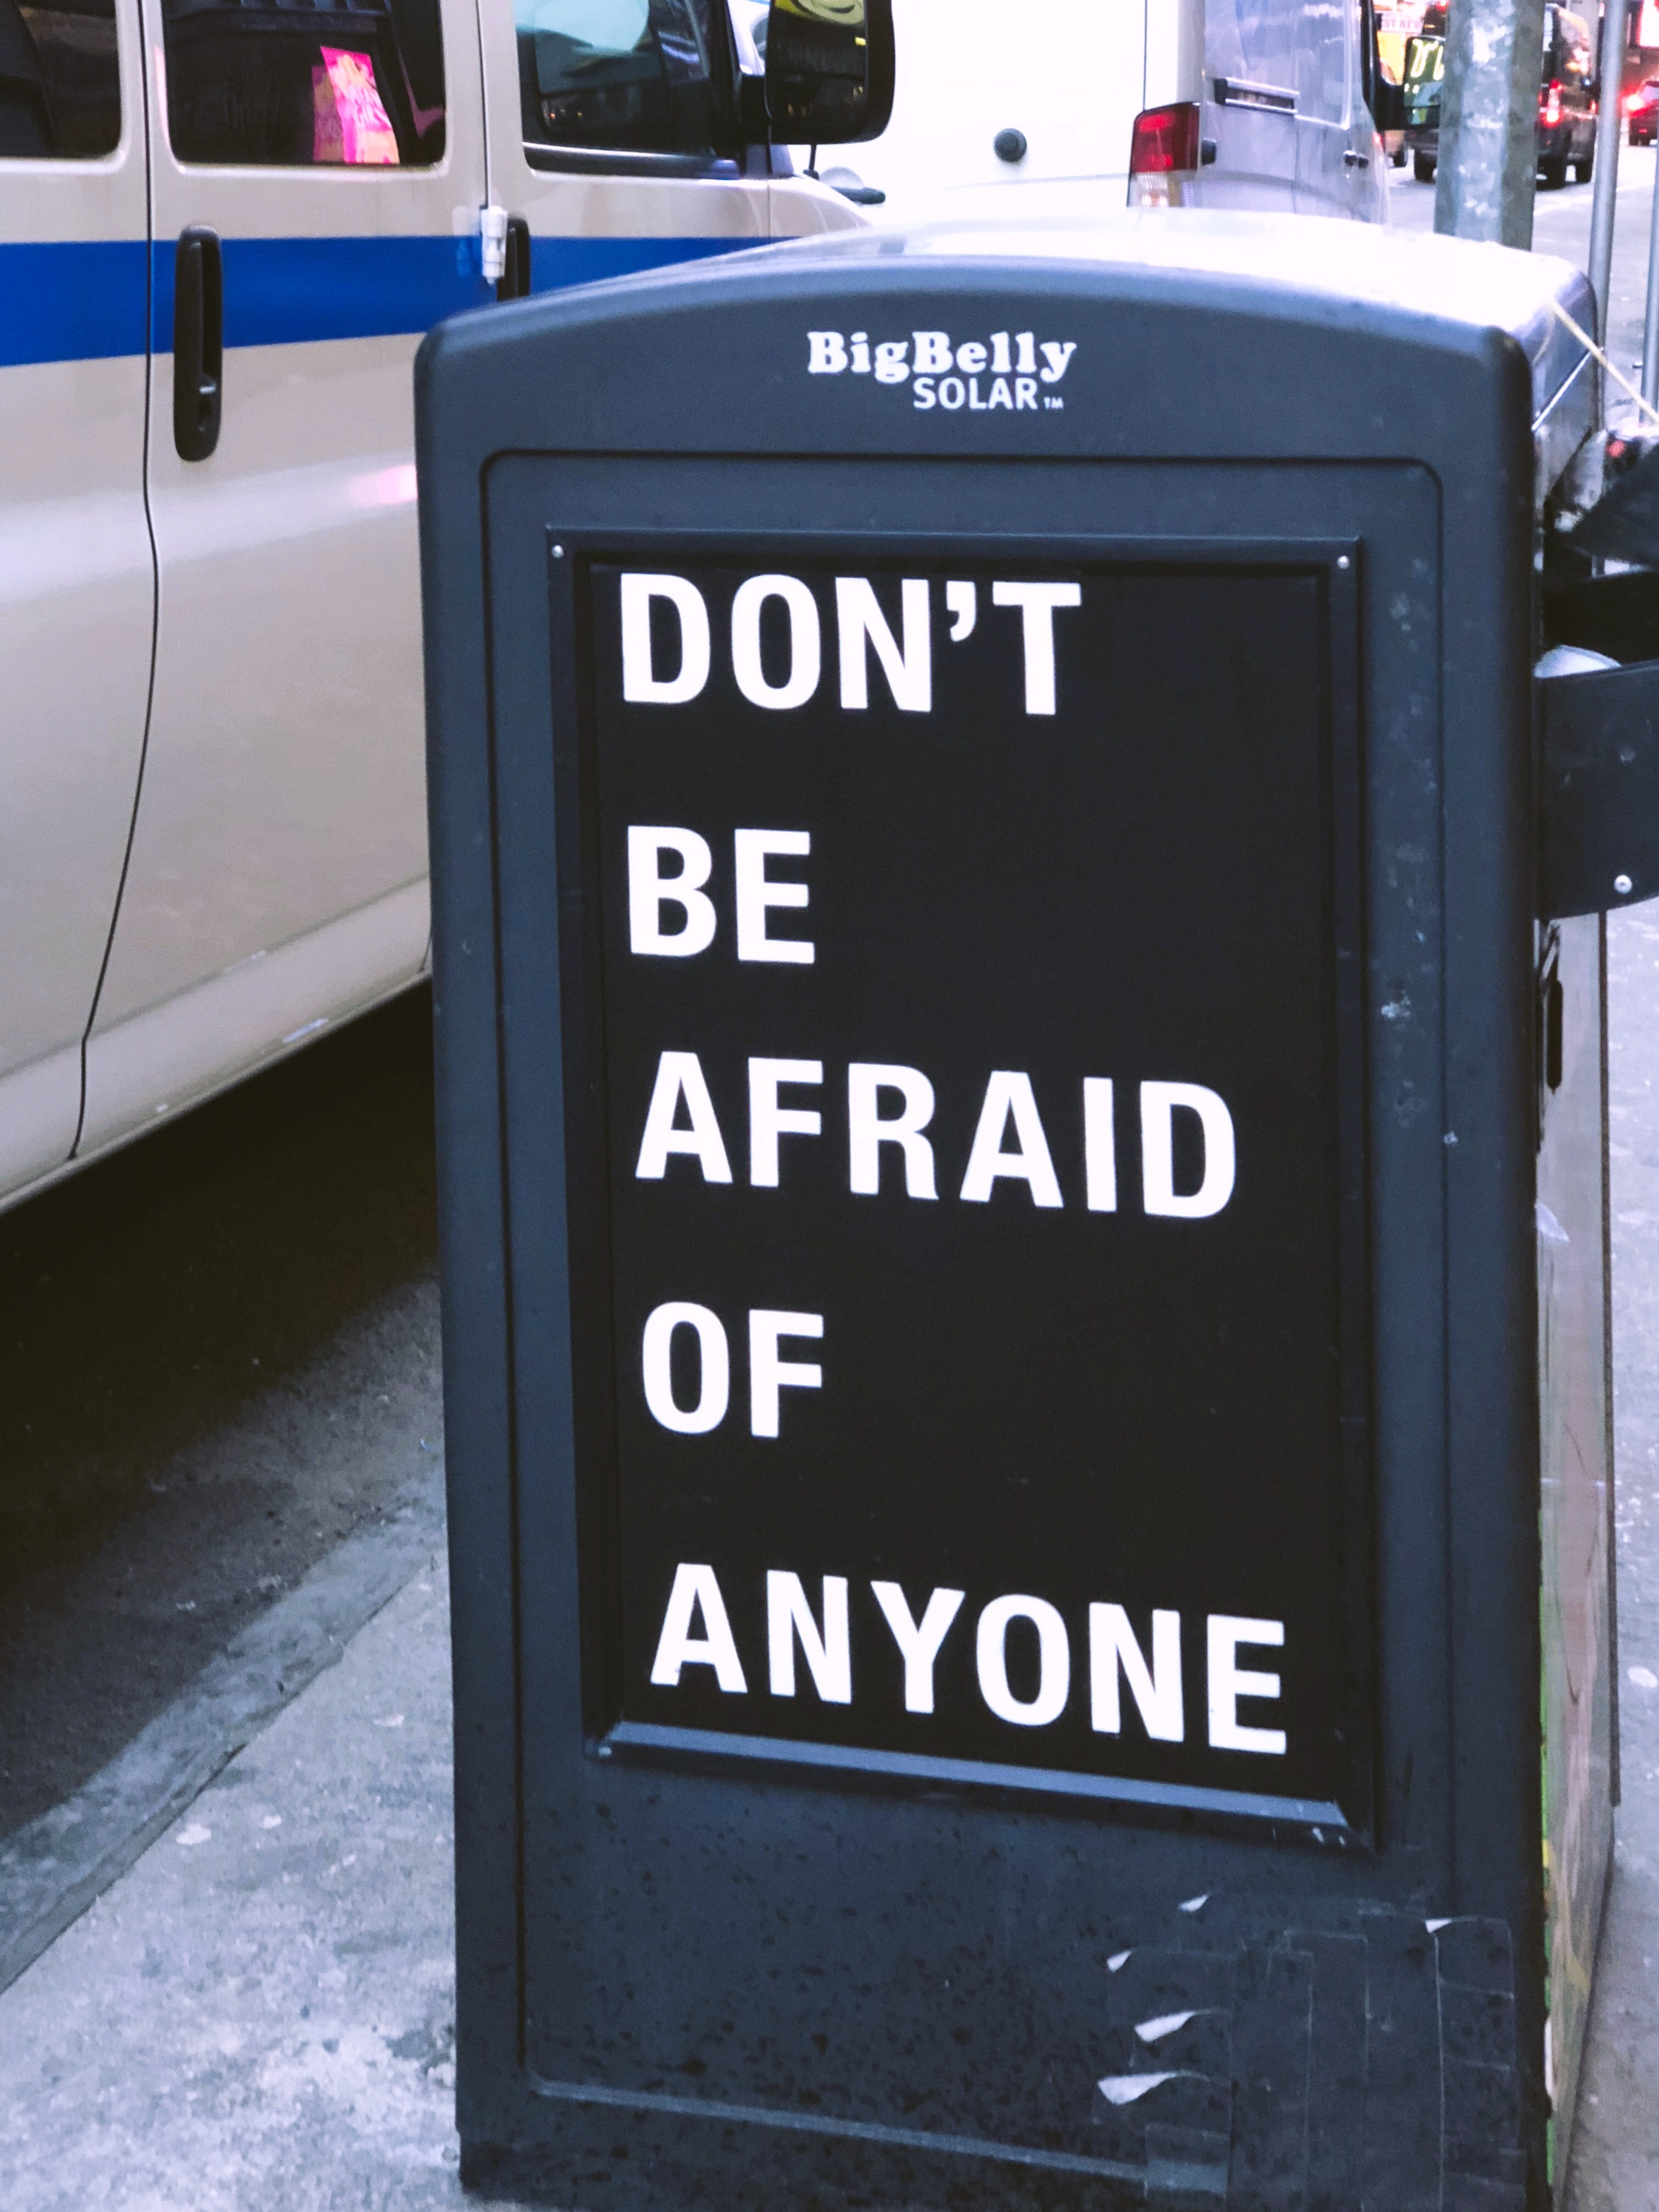 Don't be afraid of anyone sign near vehicle during daytime